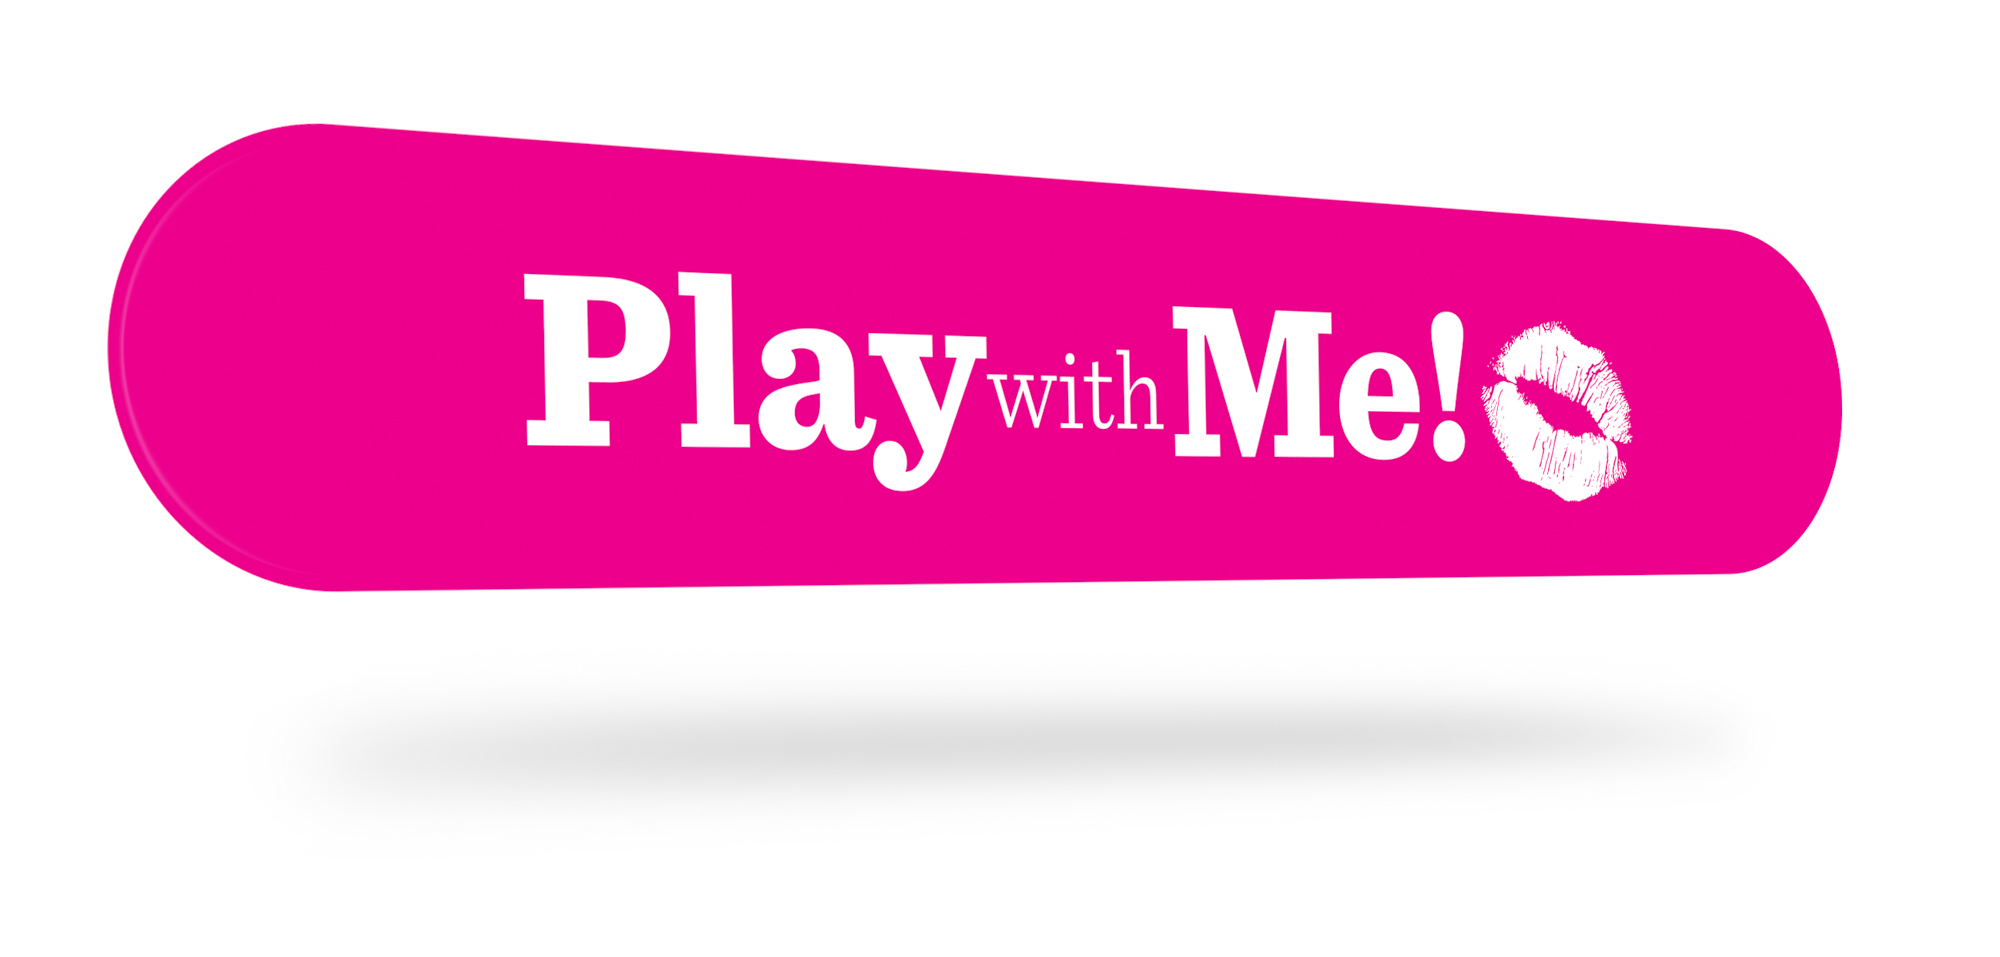 Play with Me - Slatwall Sign